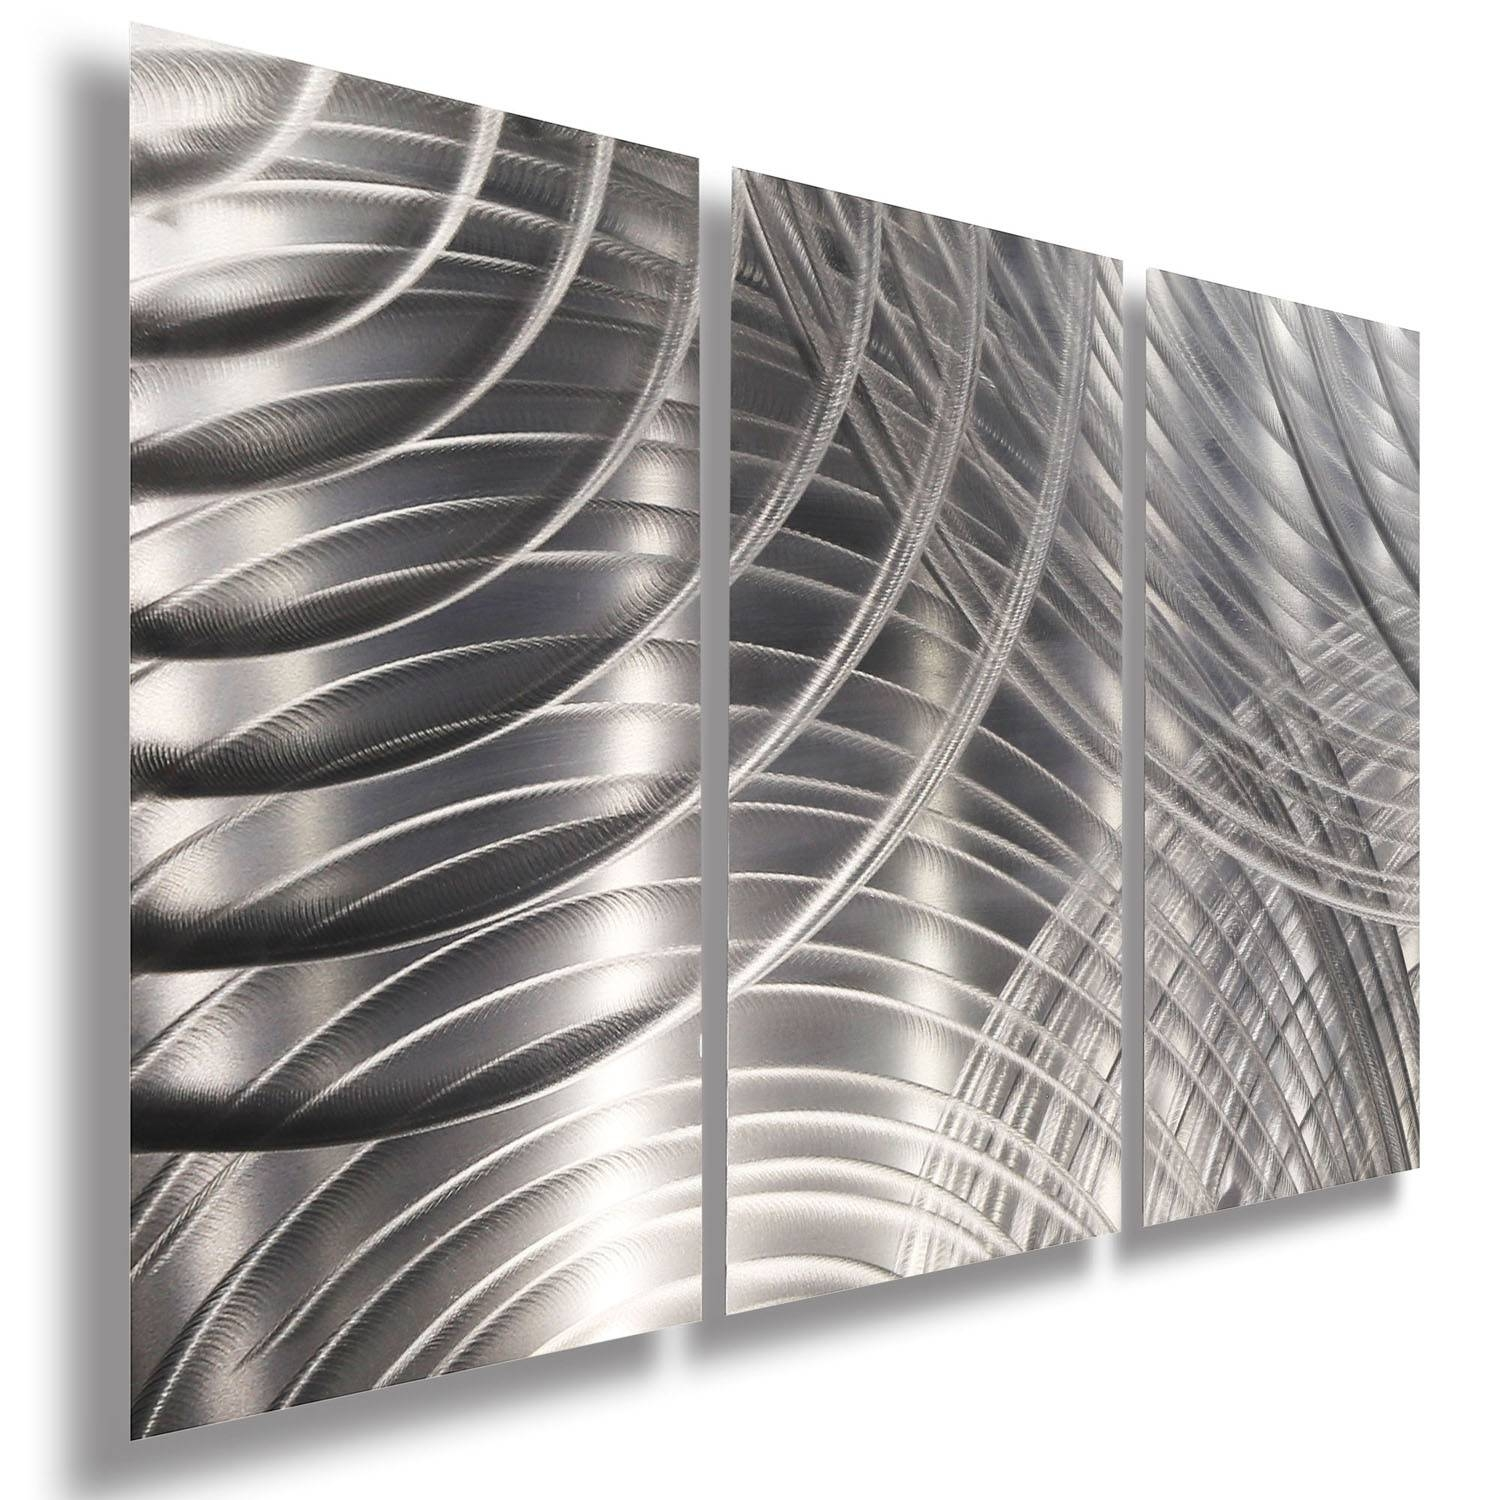 Equinox Ii 3P – All Silver 3 Panel Metal Wall Art Accentjon Intended For Recent Silver Metal Wall Art (Gallery 4 of 20)